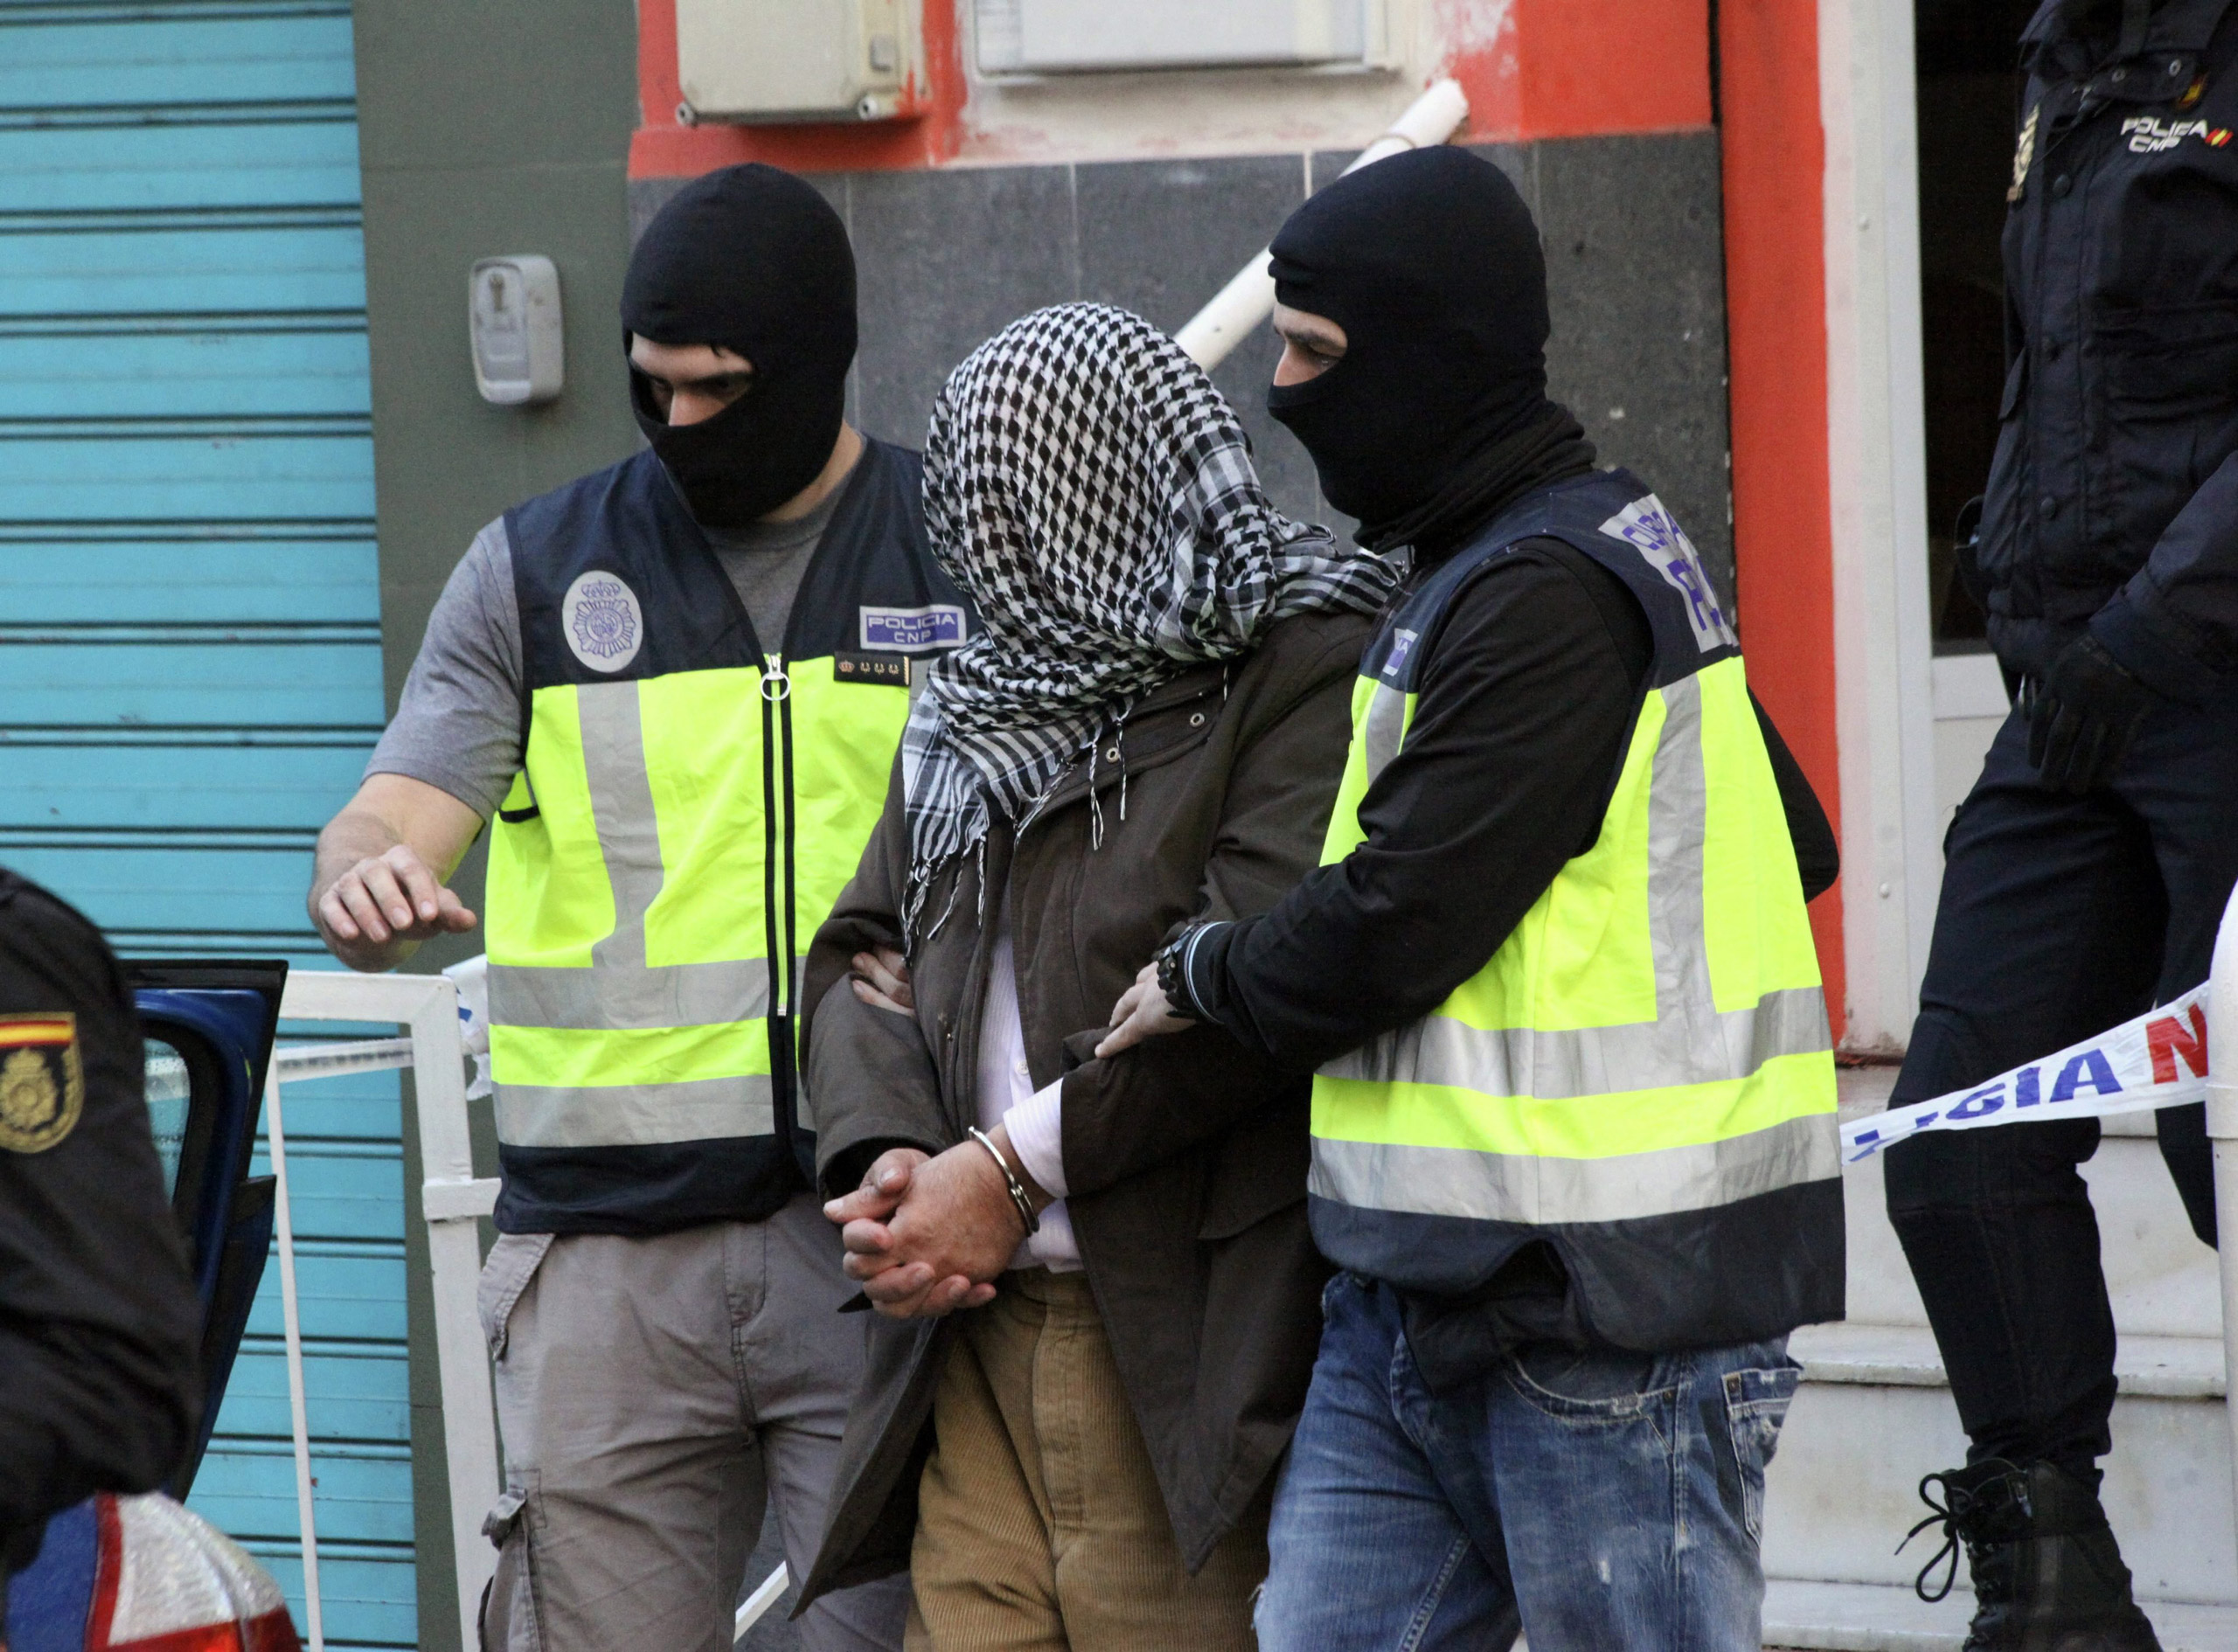 Spanish policemen escort a man who was arrested during a operation against Jihadist terrorism in Ceuta, Spanish enclave in northern Africa, on Feb. 7, 2016.